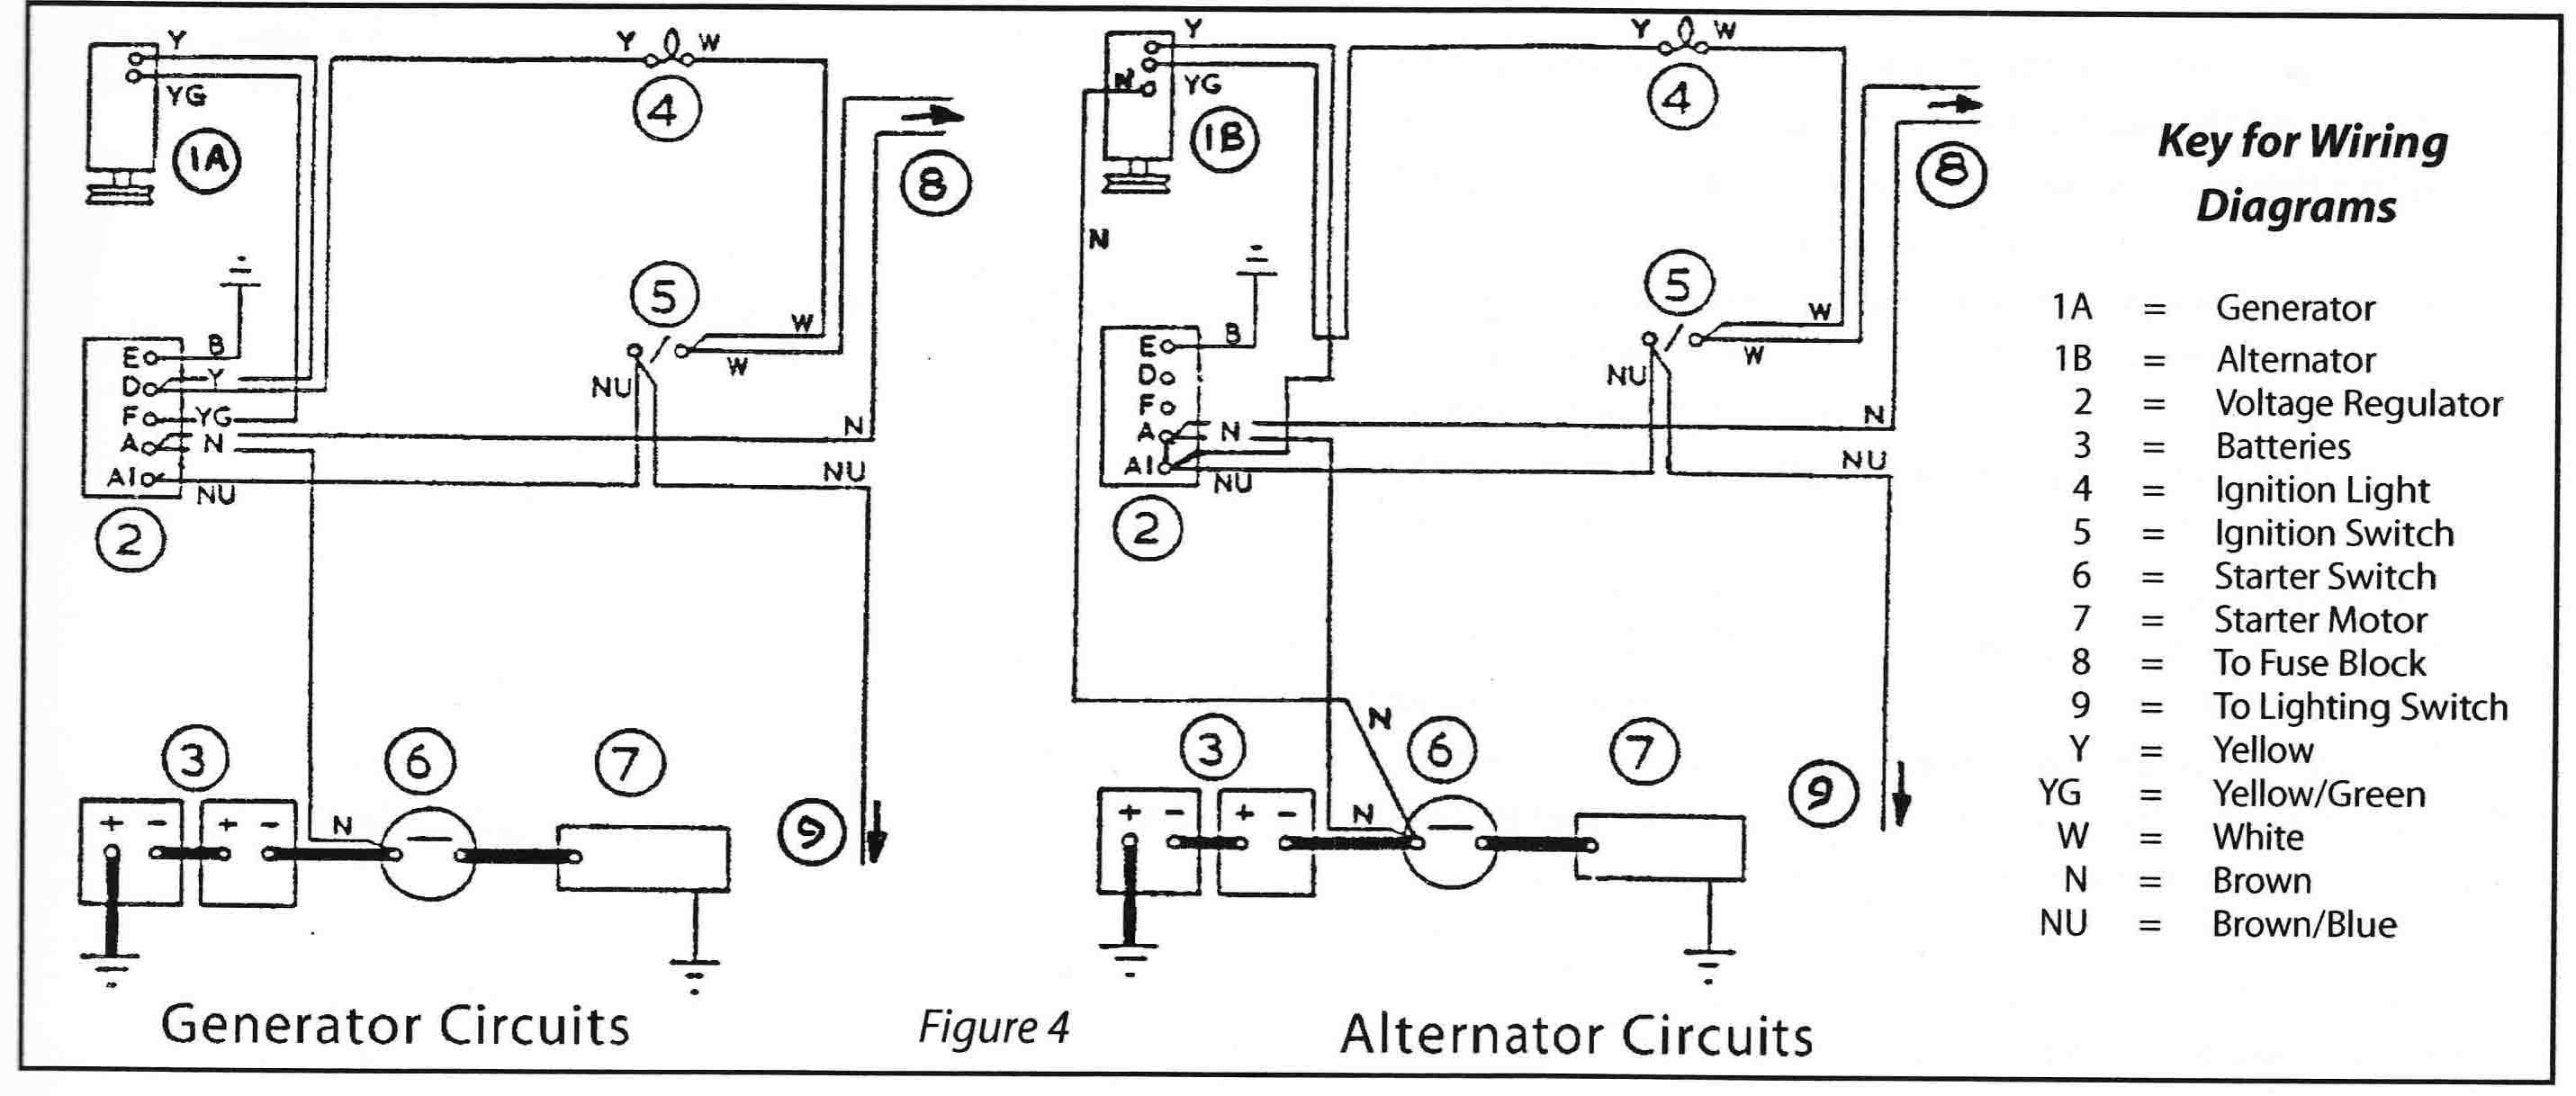 Mgb Alternator Conversion Wiring Diagramon 1978 Ford Alternator Wiring Diagram